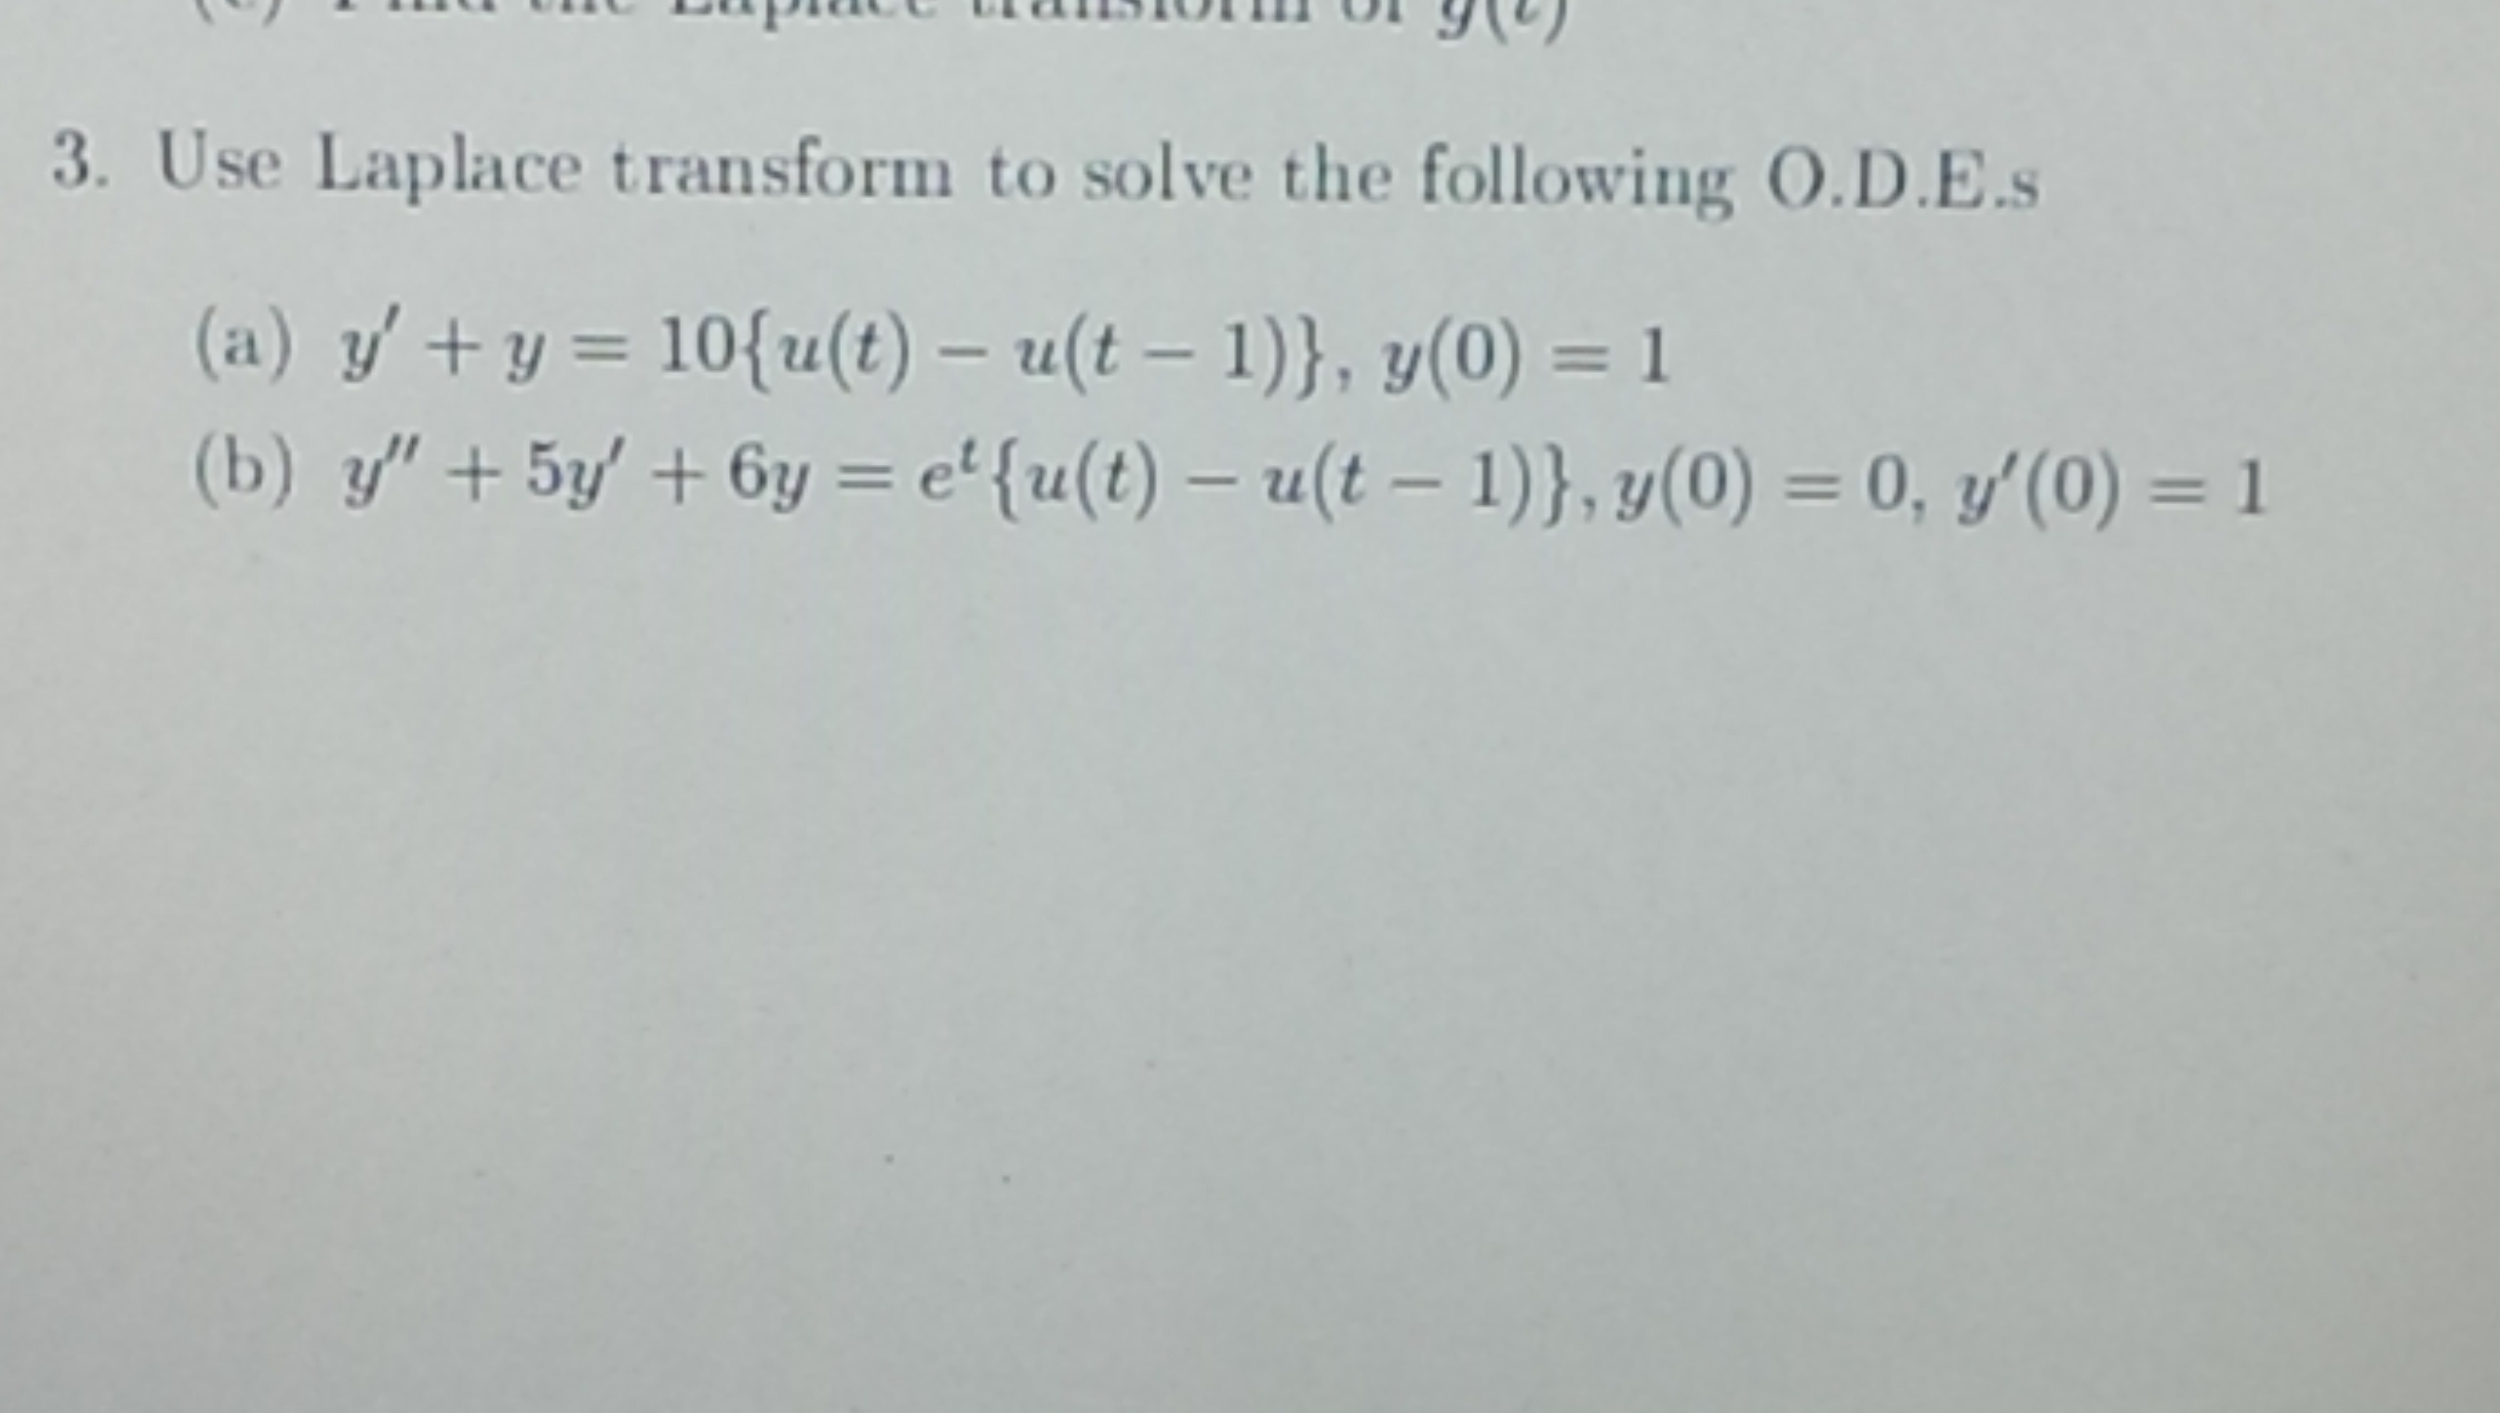 Use Laplace transform to solve the following O.D